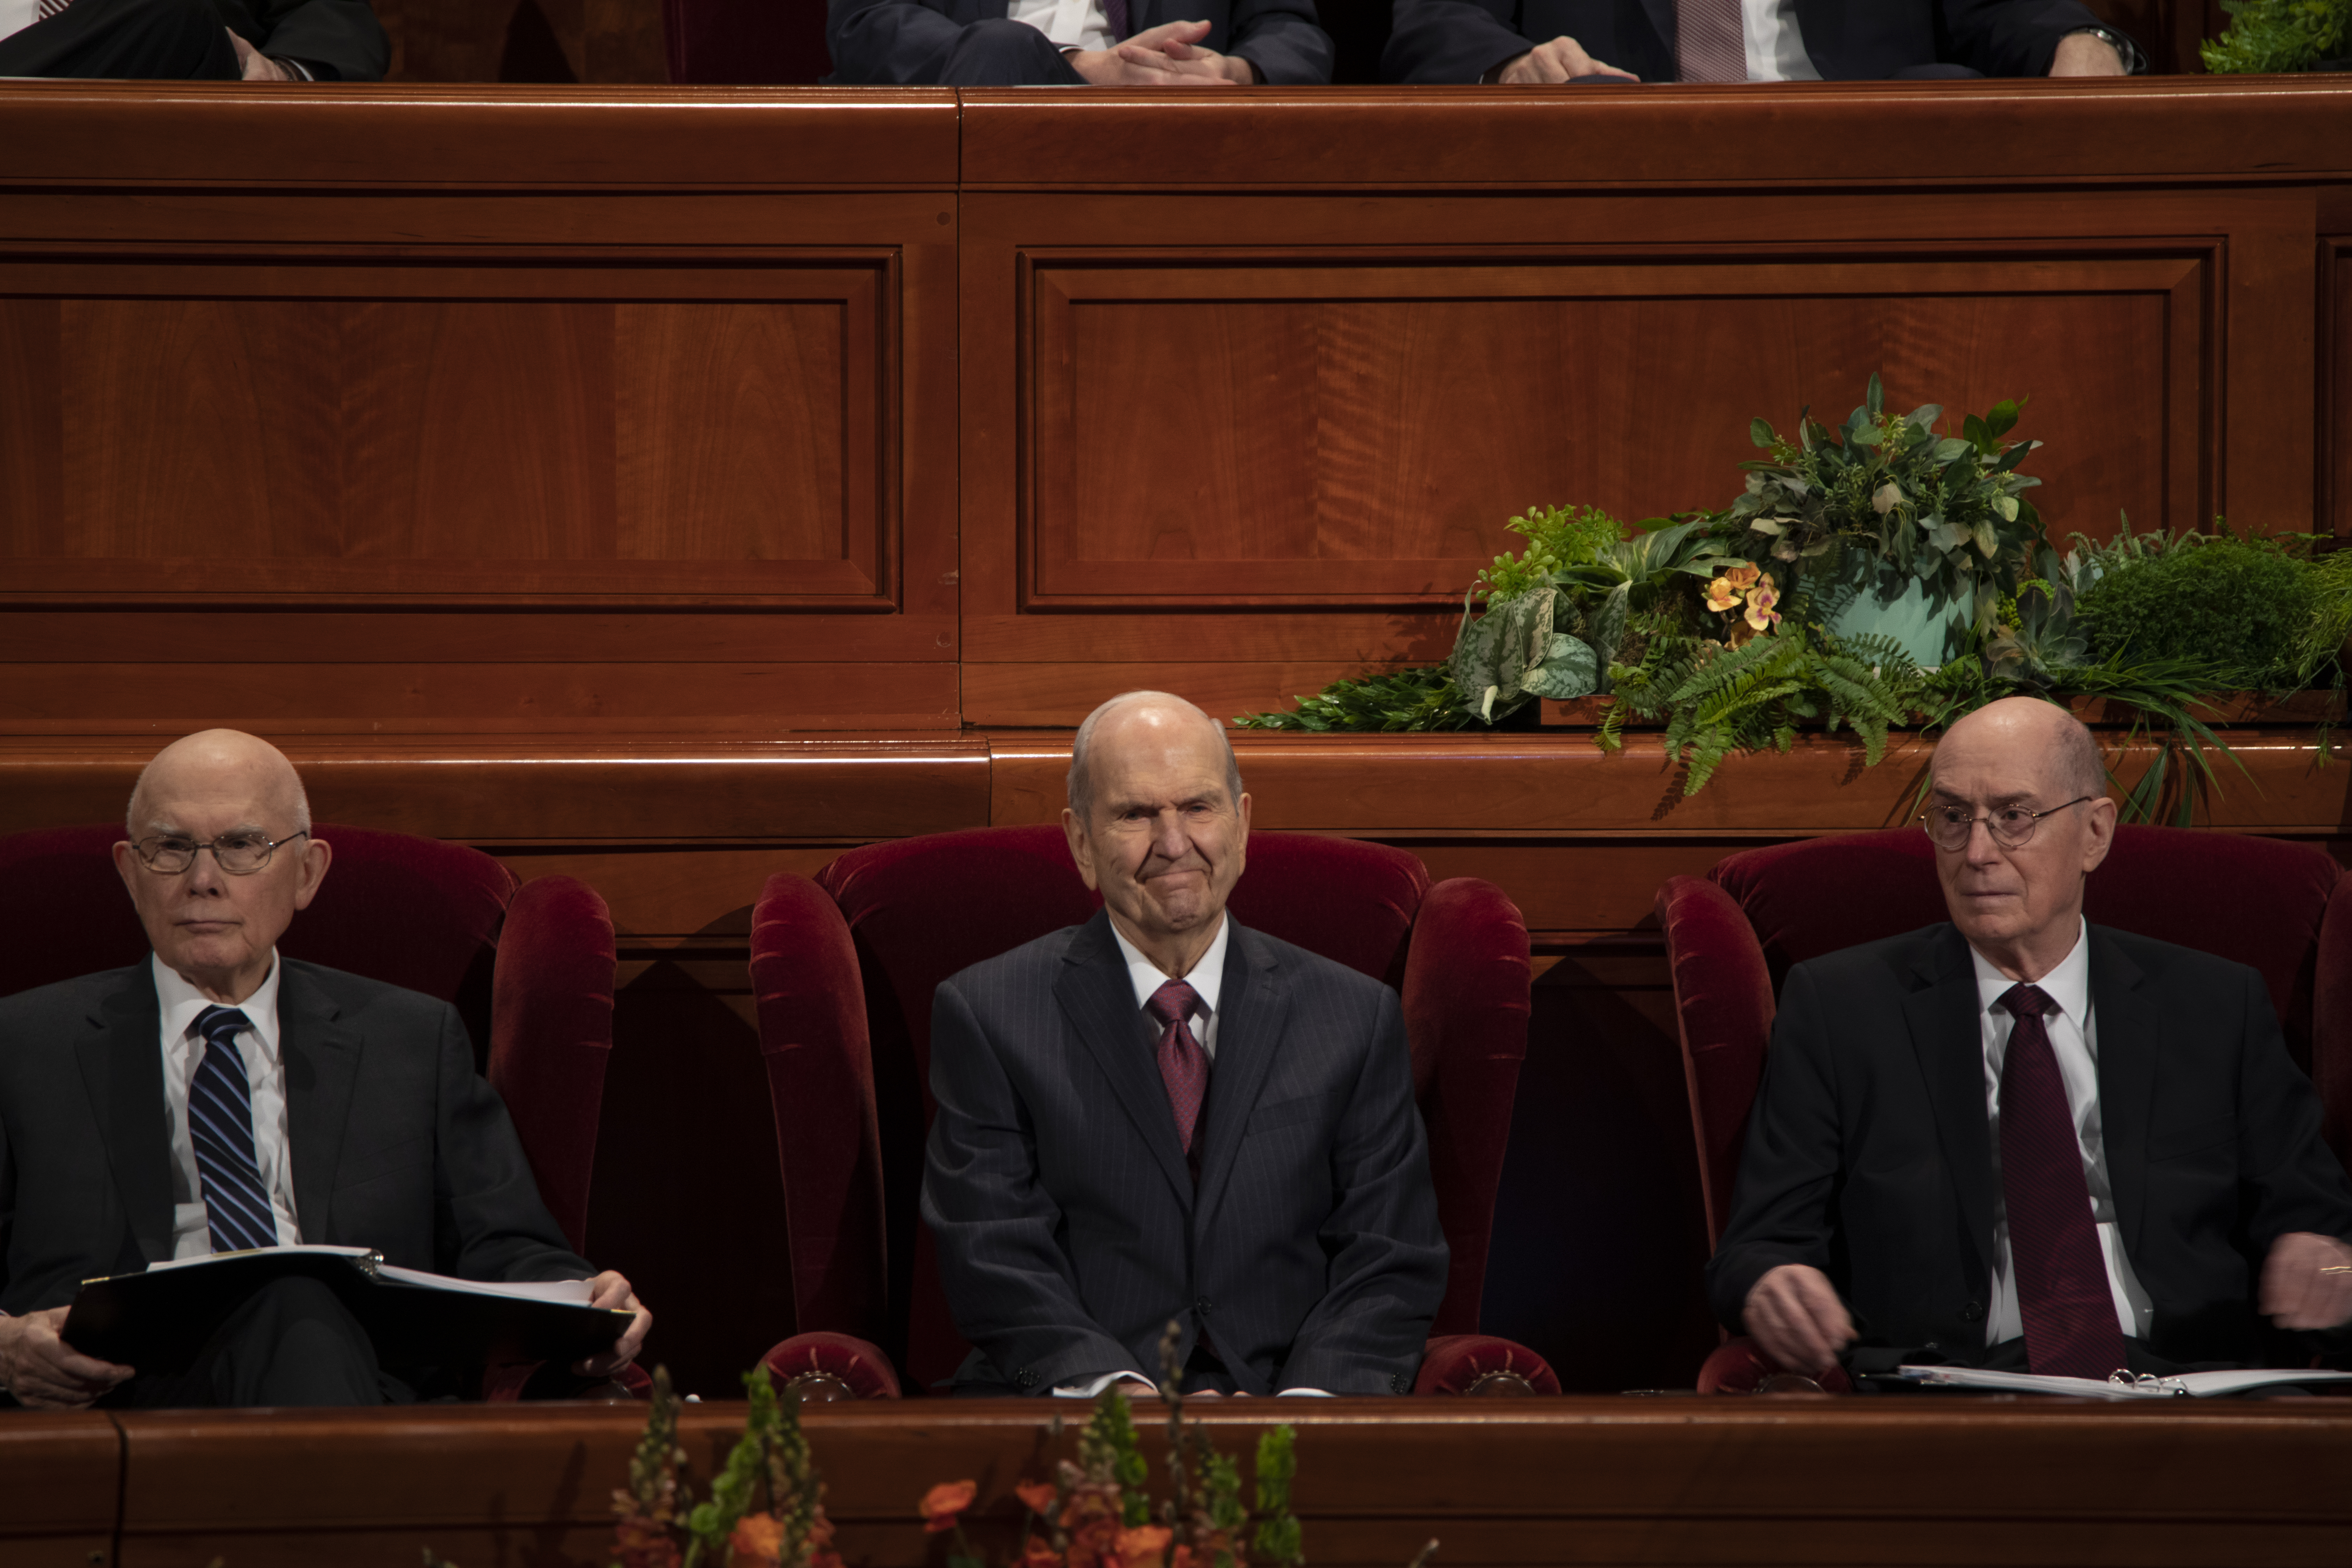 President Russell M. Nelson and his counselors sit together during the Saturday Morning Session of General Conference.